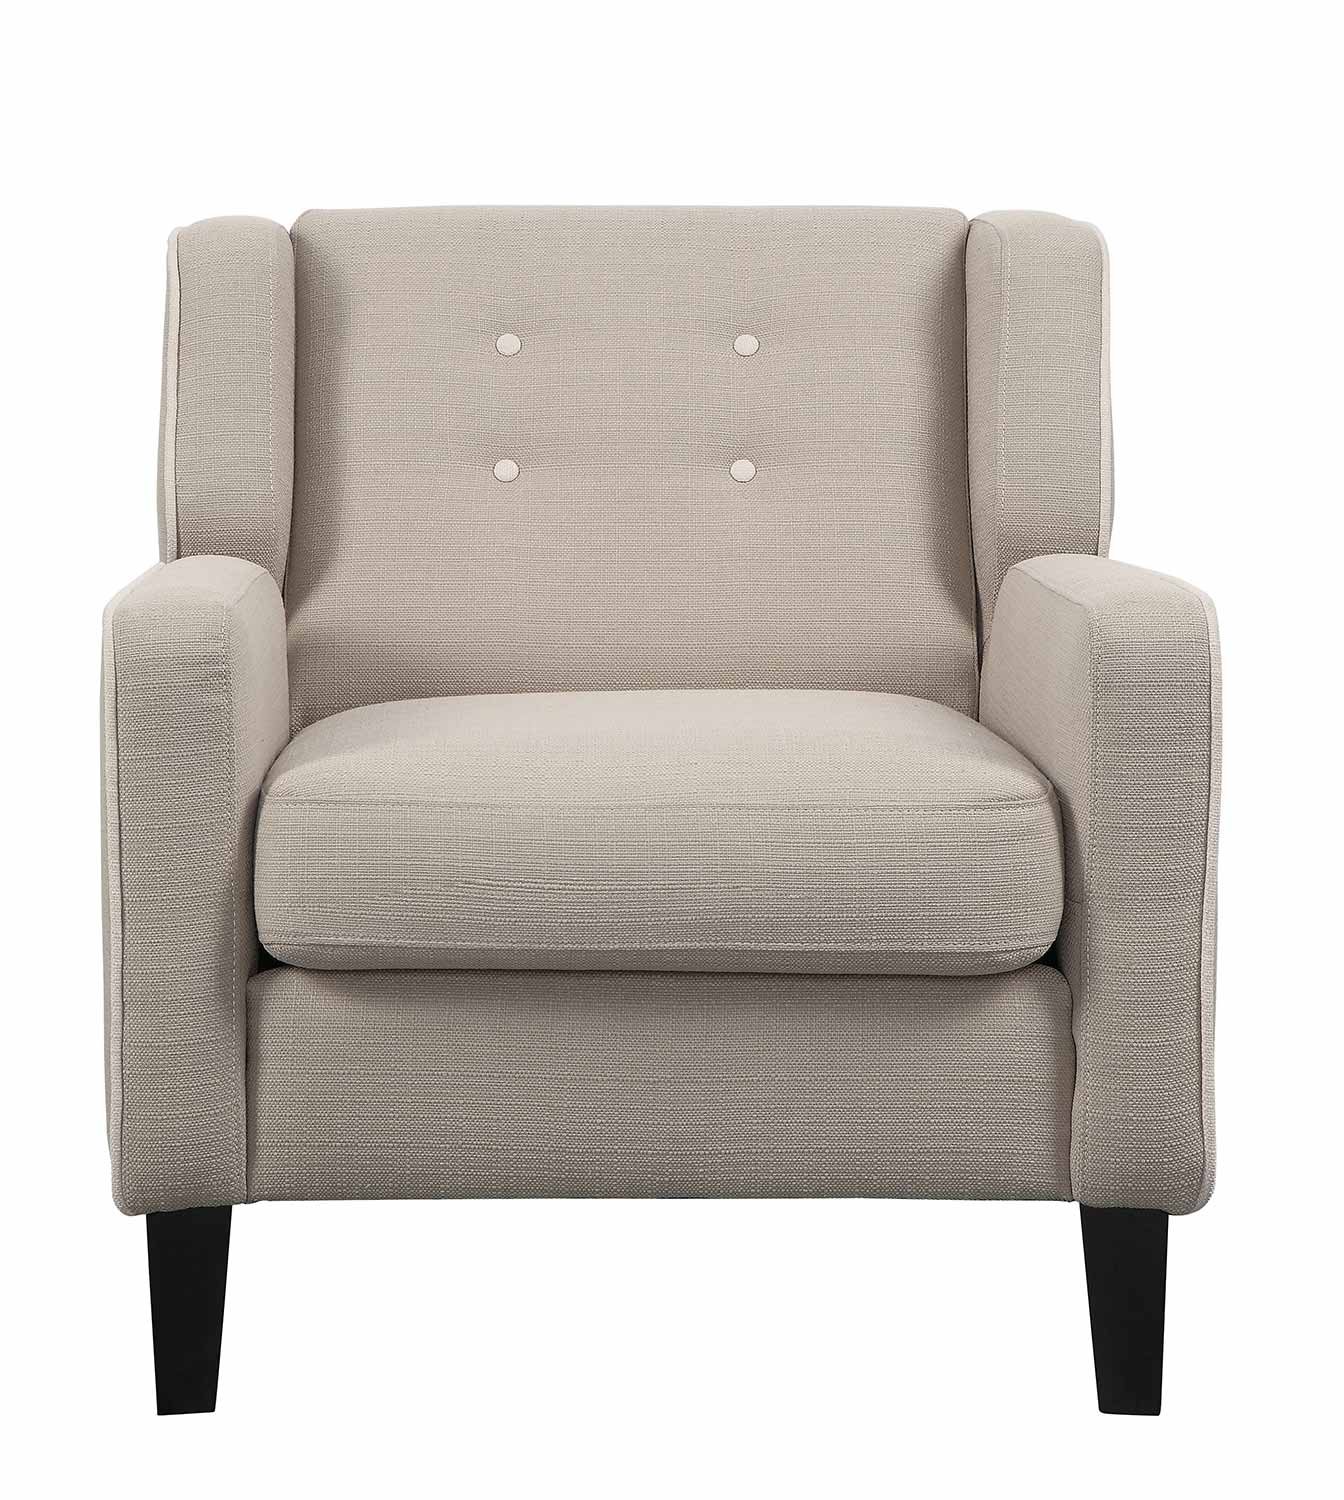 Homelegance Roweena Chair - Beige